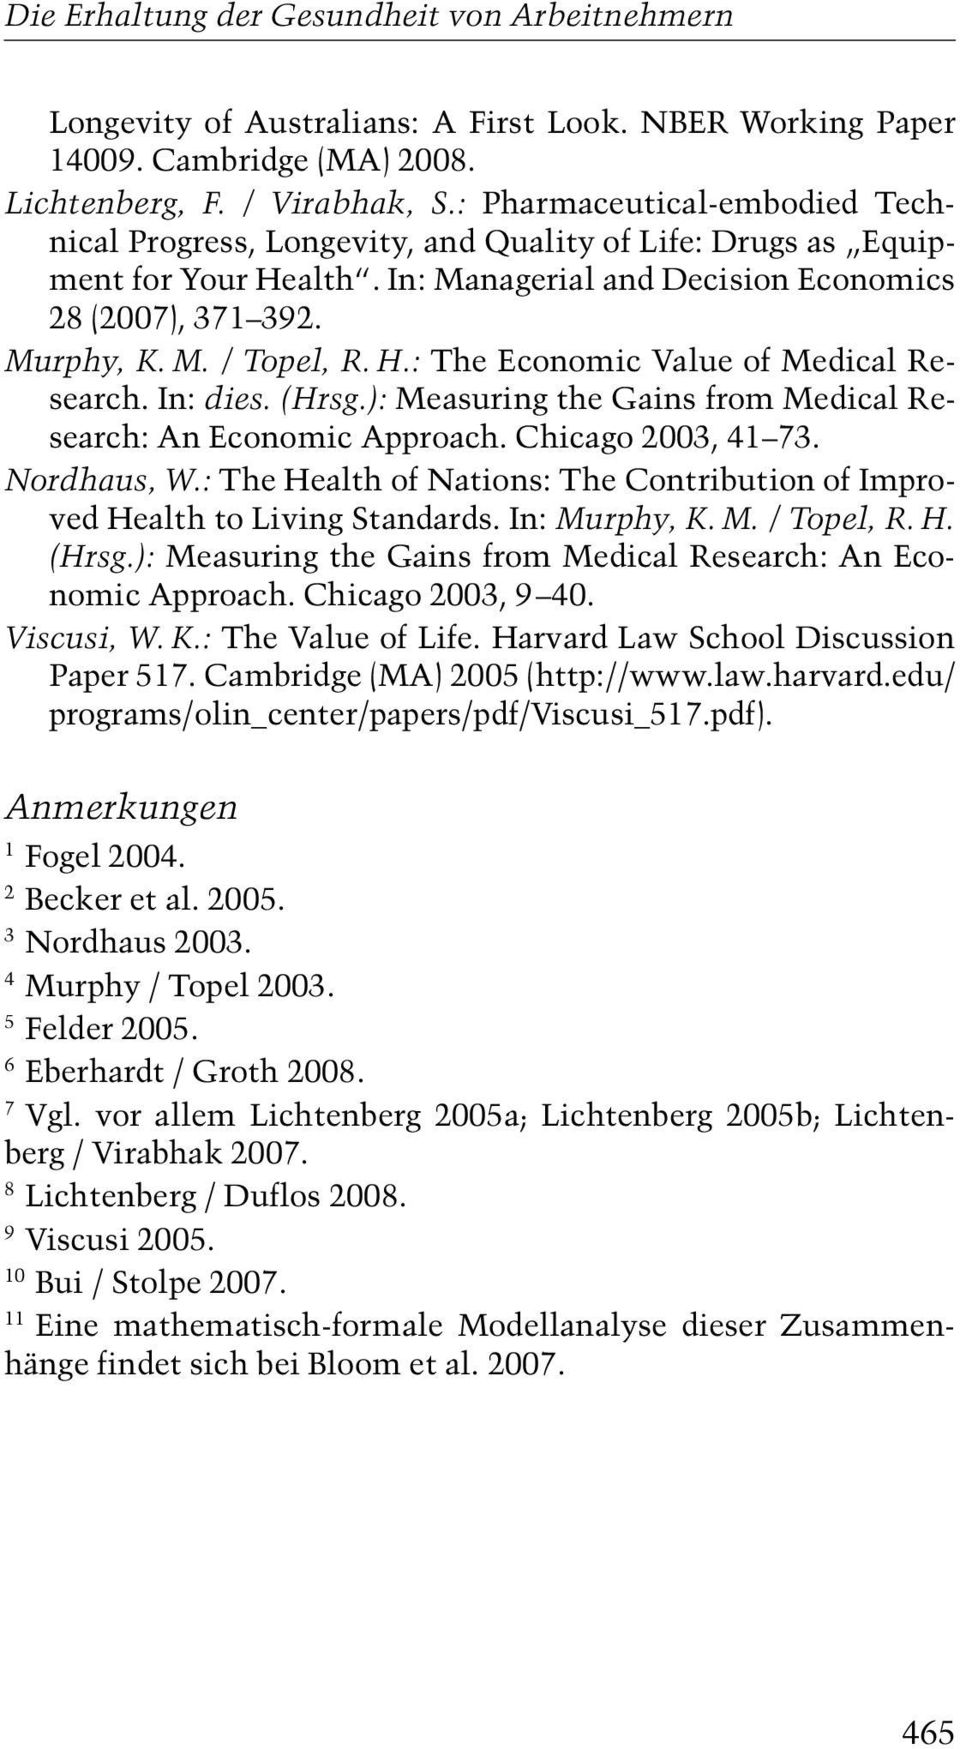 In: dies. (Hrsg.): Measuring the Gains from Medical Research: An Economic Approach. Chicago 2003, 41 73. Nordhaus, W.: The Health of Nations: The Contribution of Improved Health to Living Standards.